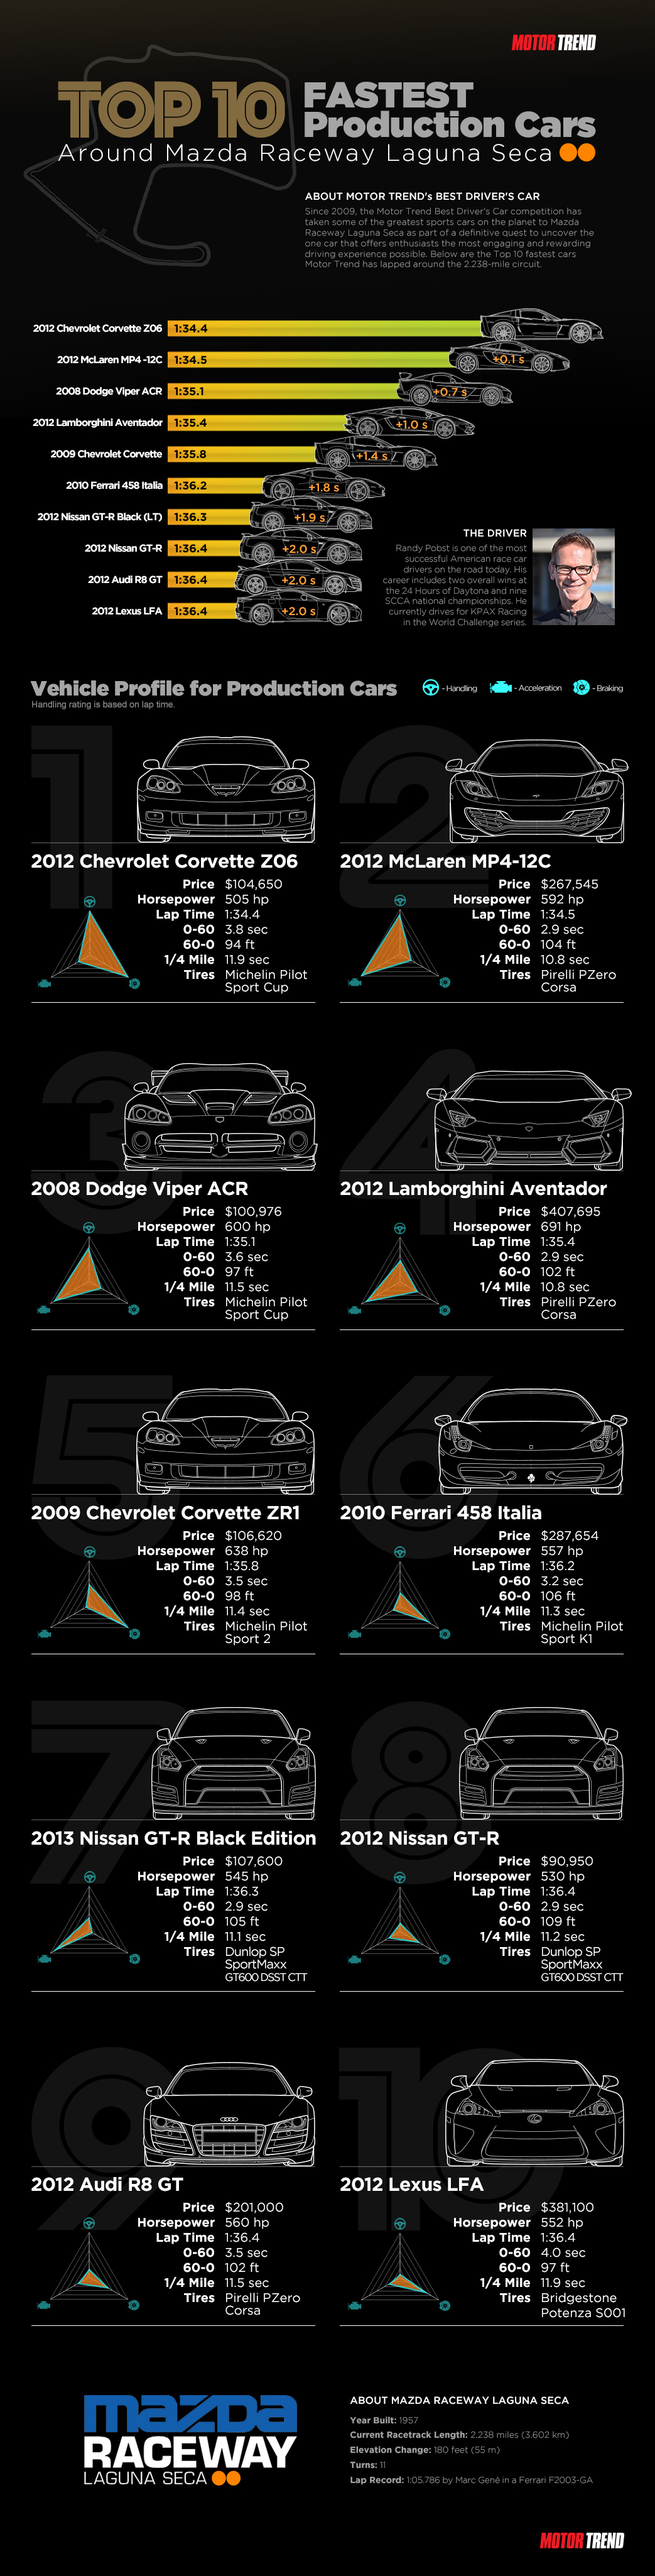 laguna-seca-lap-times-infographic-motortrend-new3